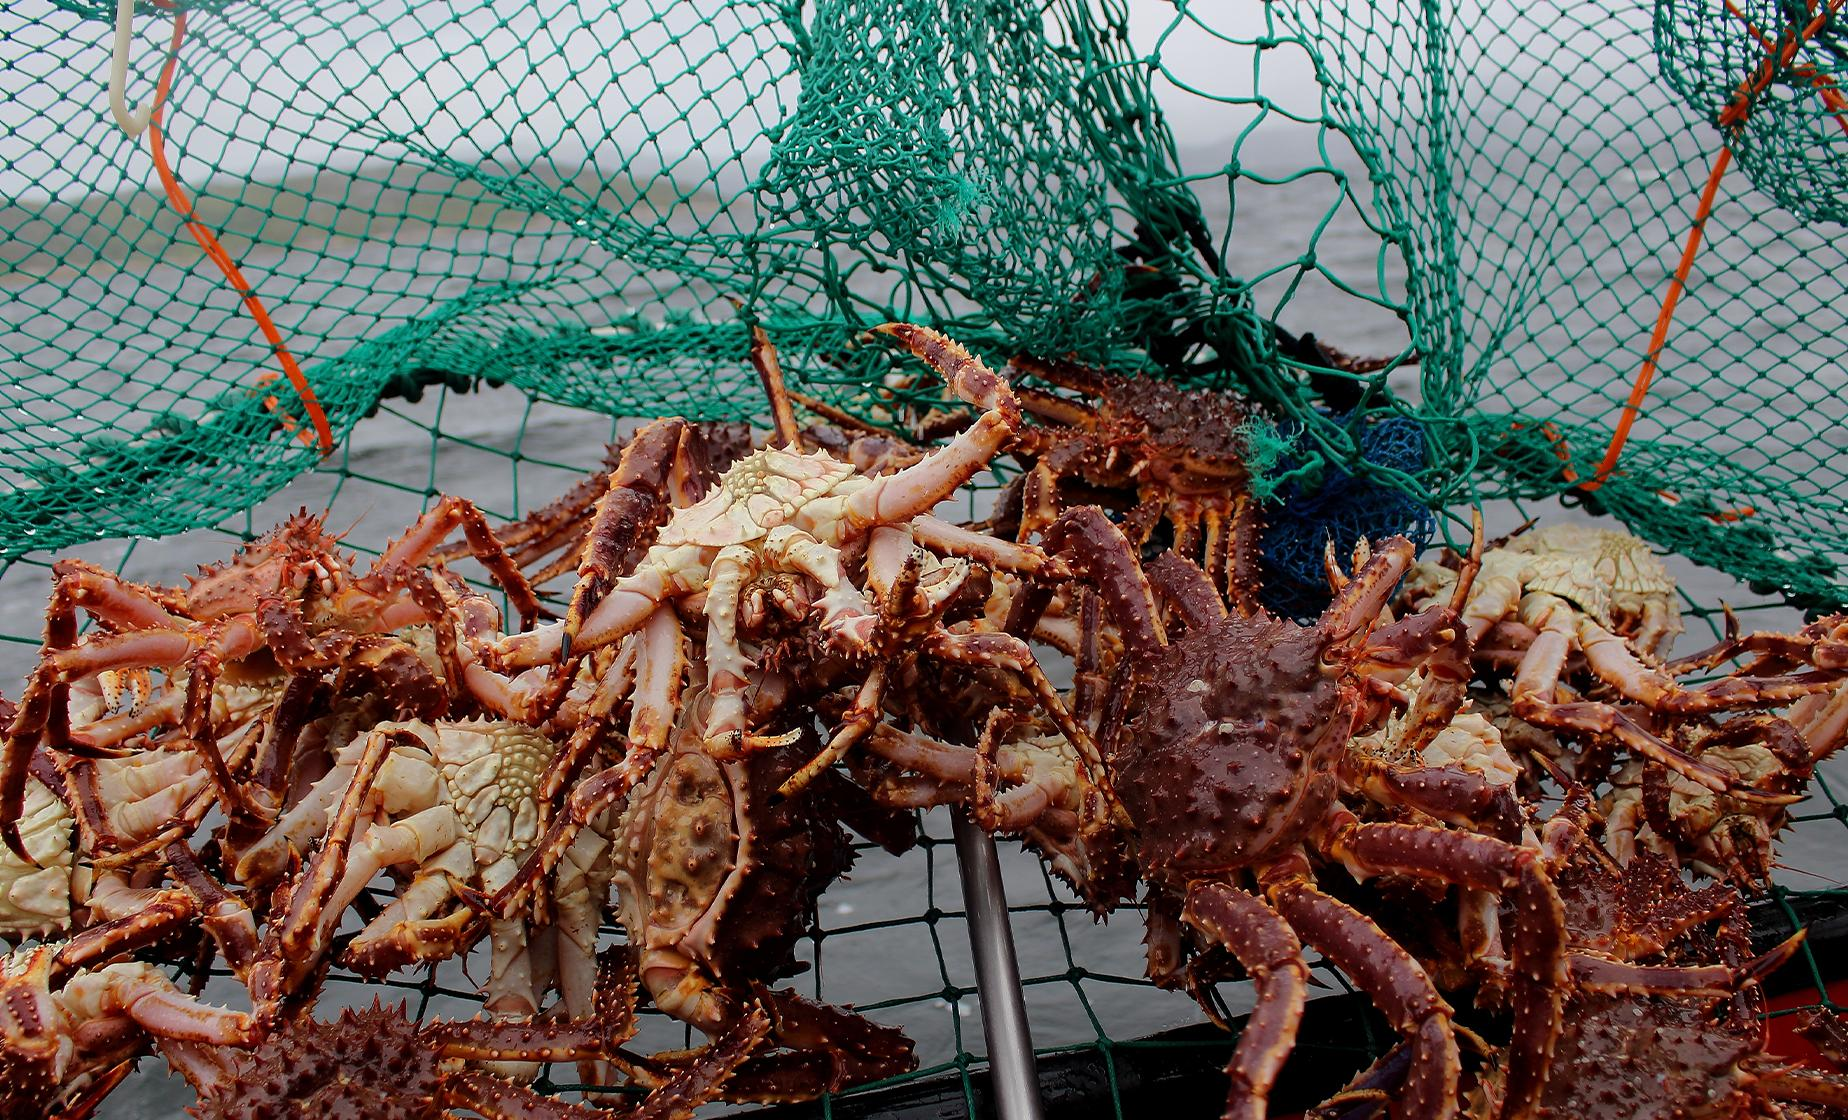 Deadliest Catch - Aleutian Ballad Tour & Bering Sea Crab Excursion in Ketchikan